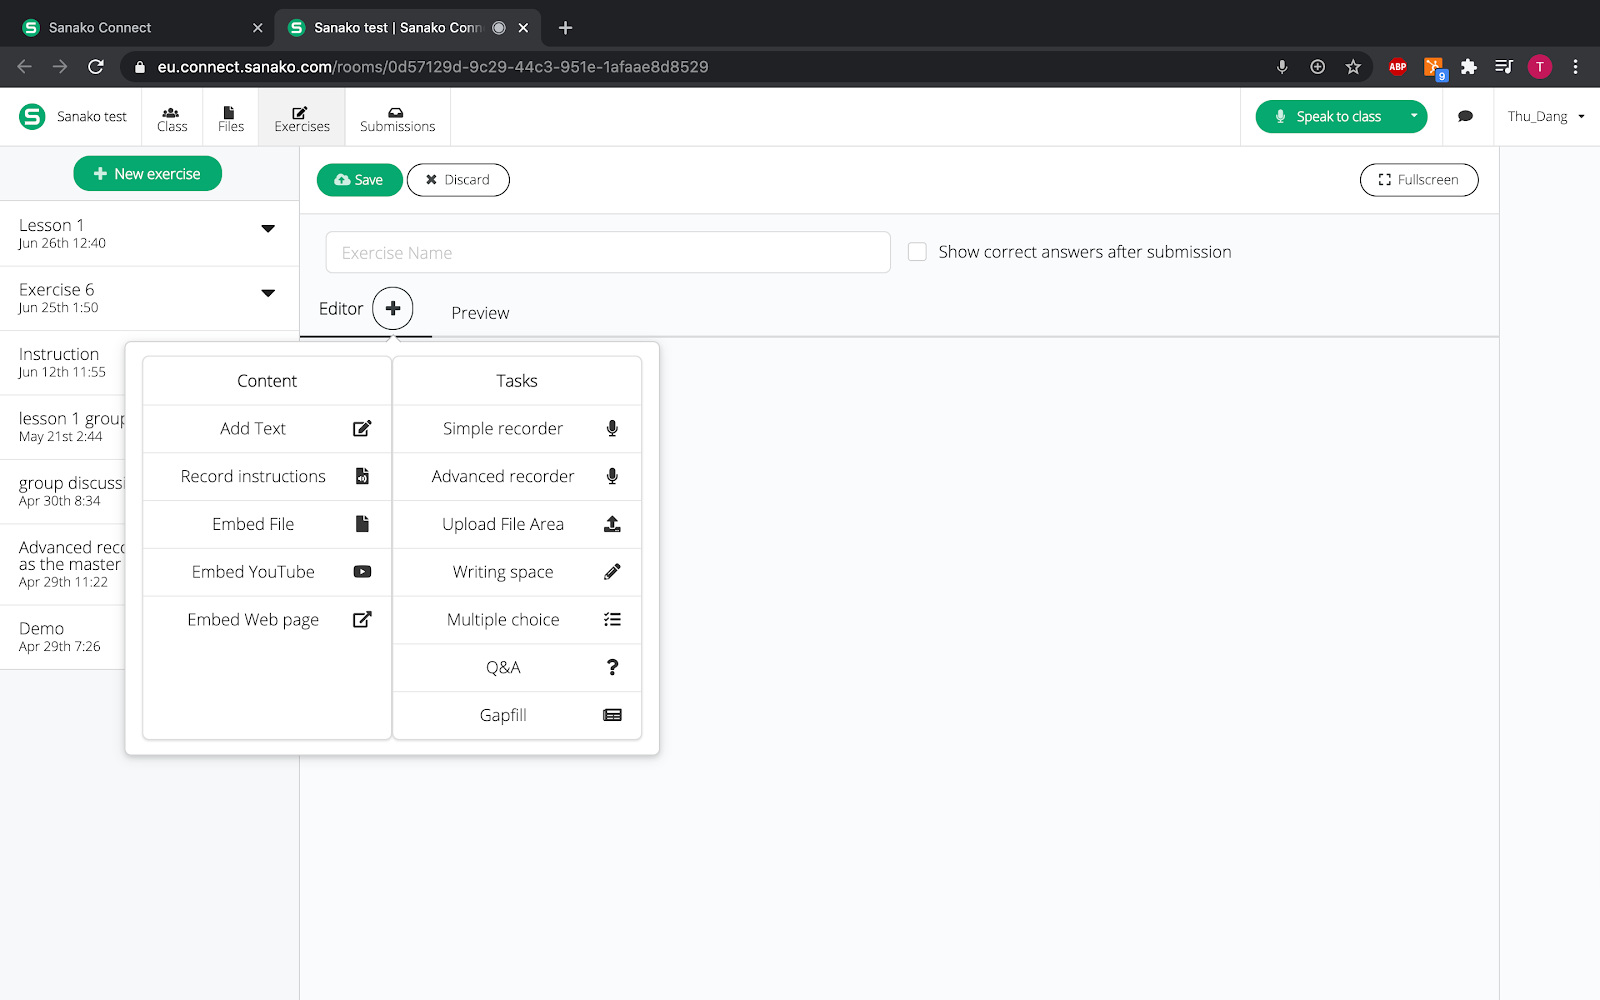 creating language learning excersises in sanako connect